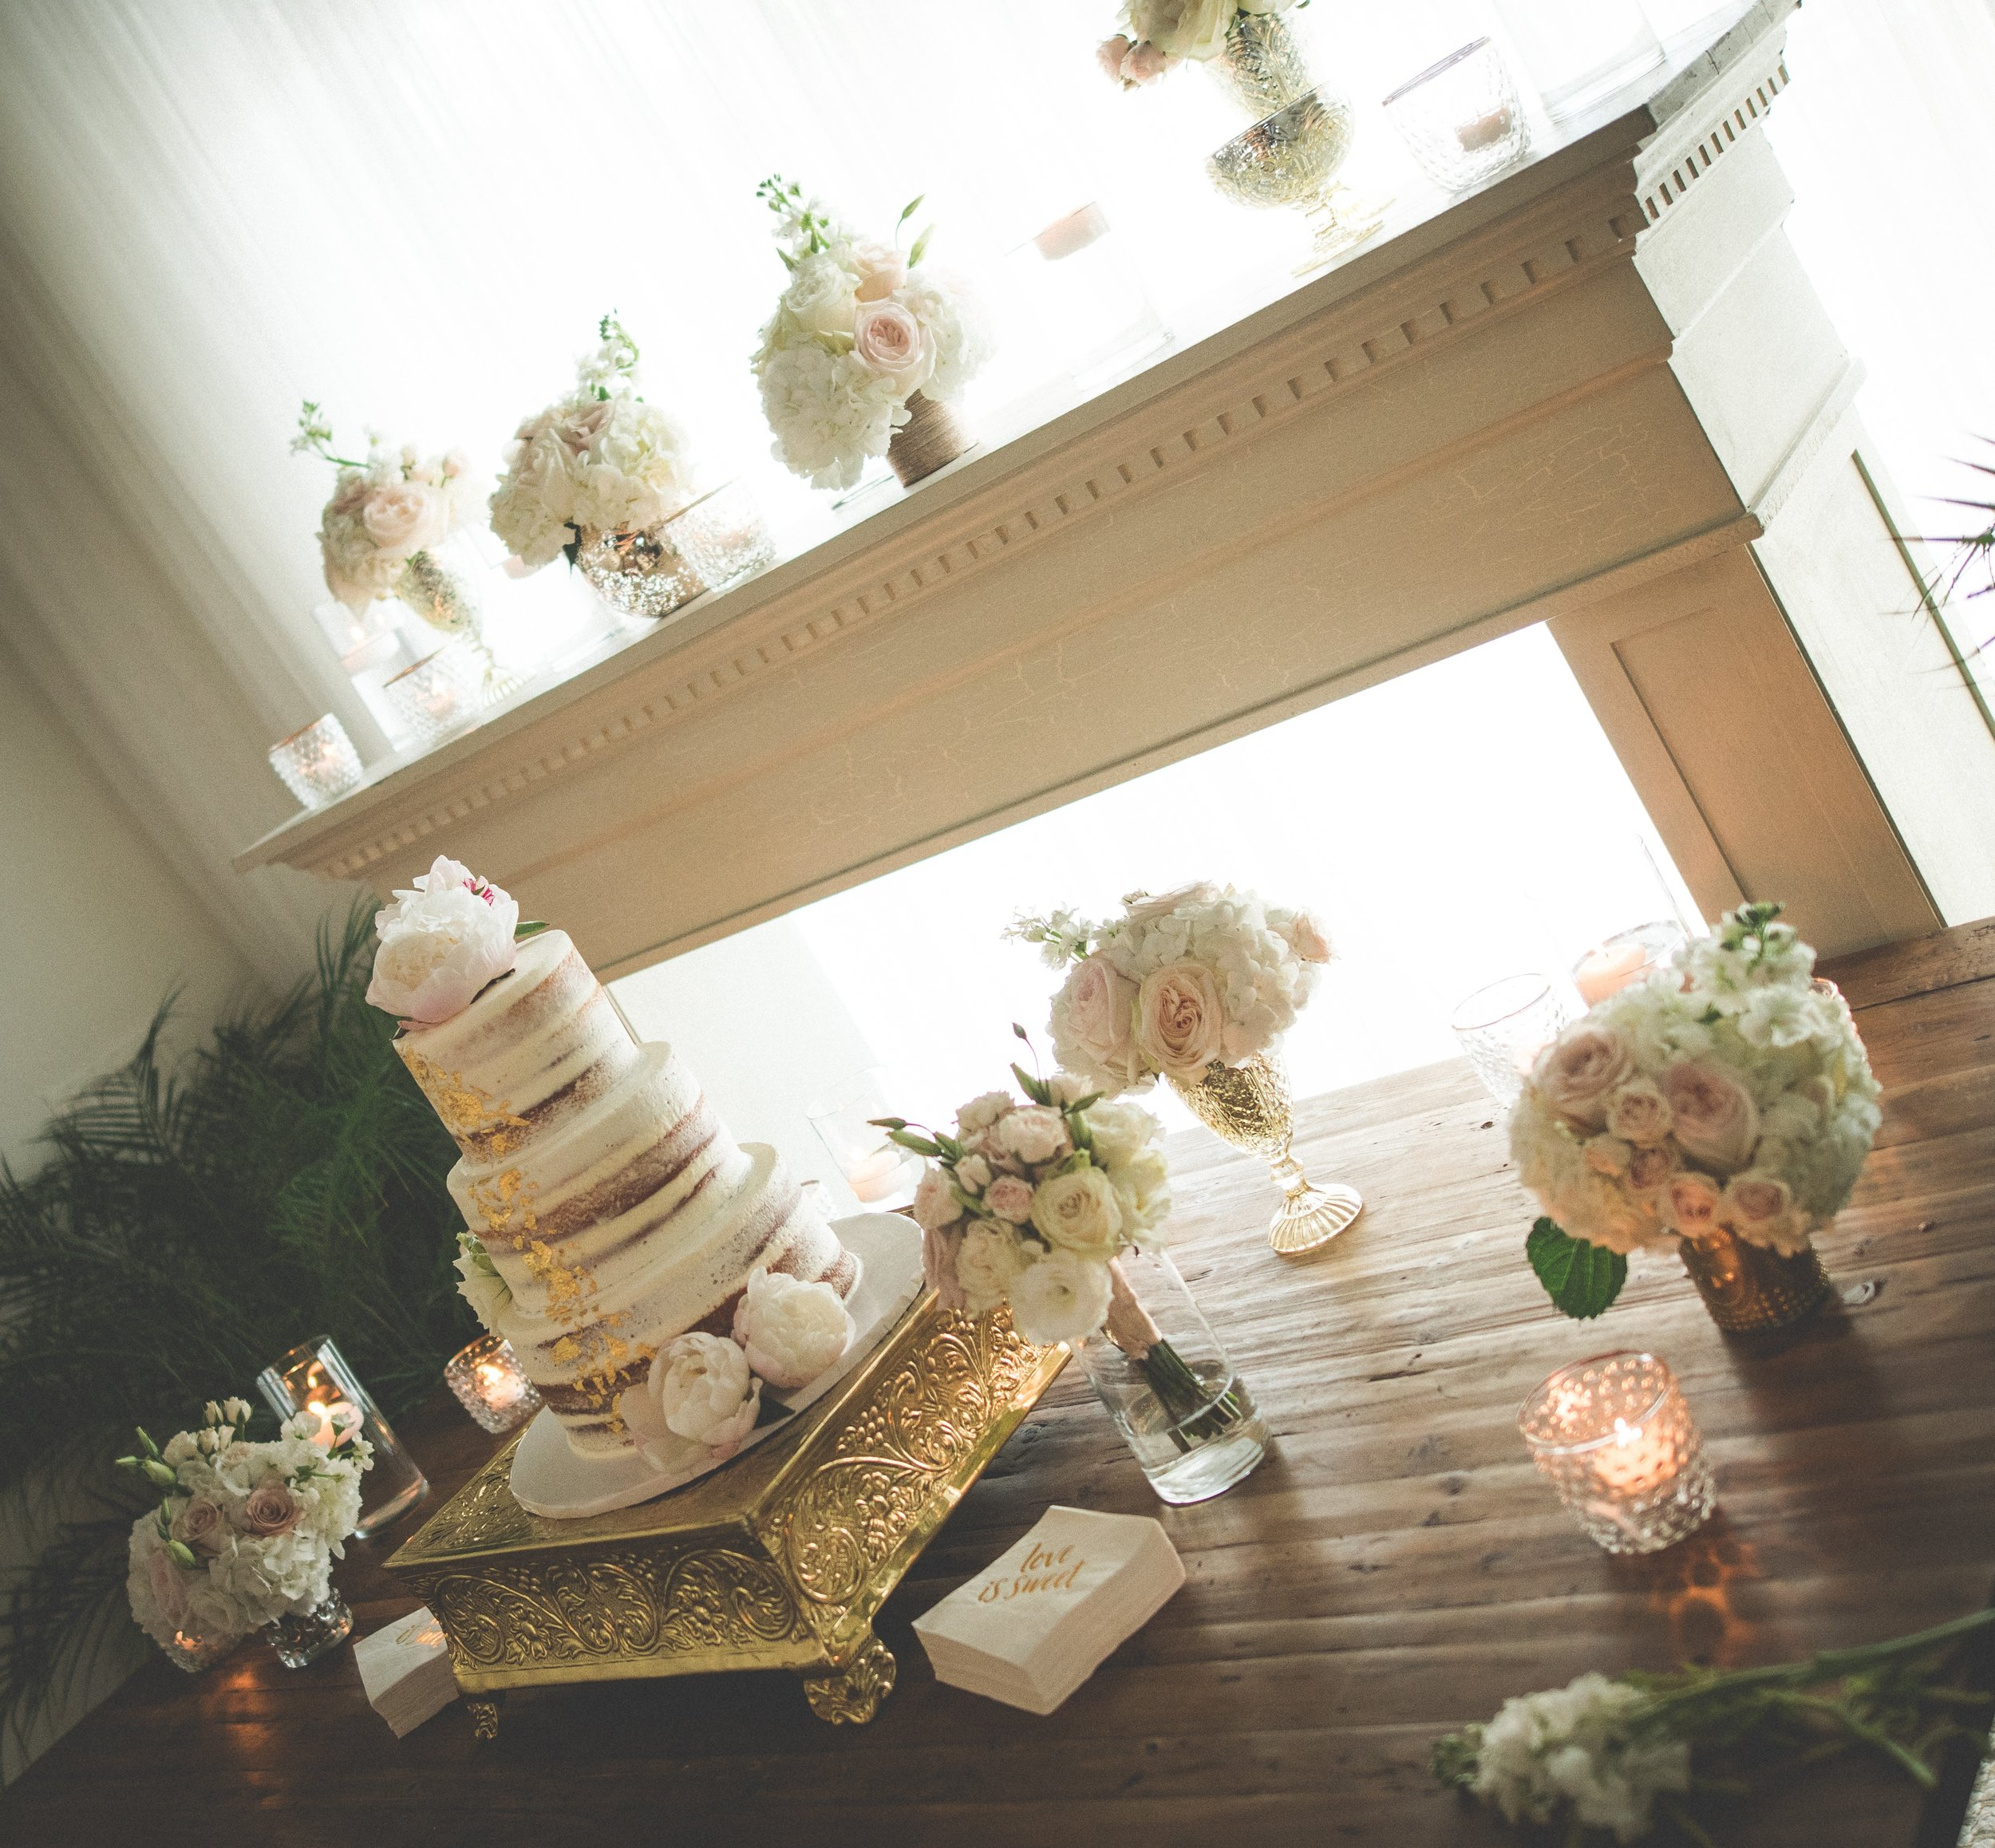 A handmade mantle was used as a focal point and backdrop for the simple and sophisticated three tiered cake, which was decorated with metallic gold accents and fresh peonies.